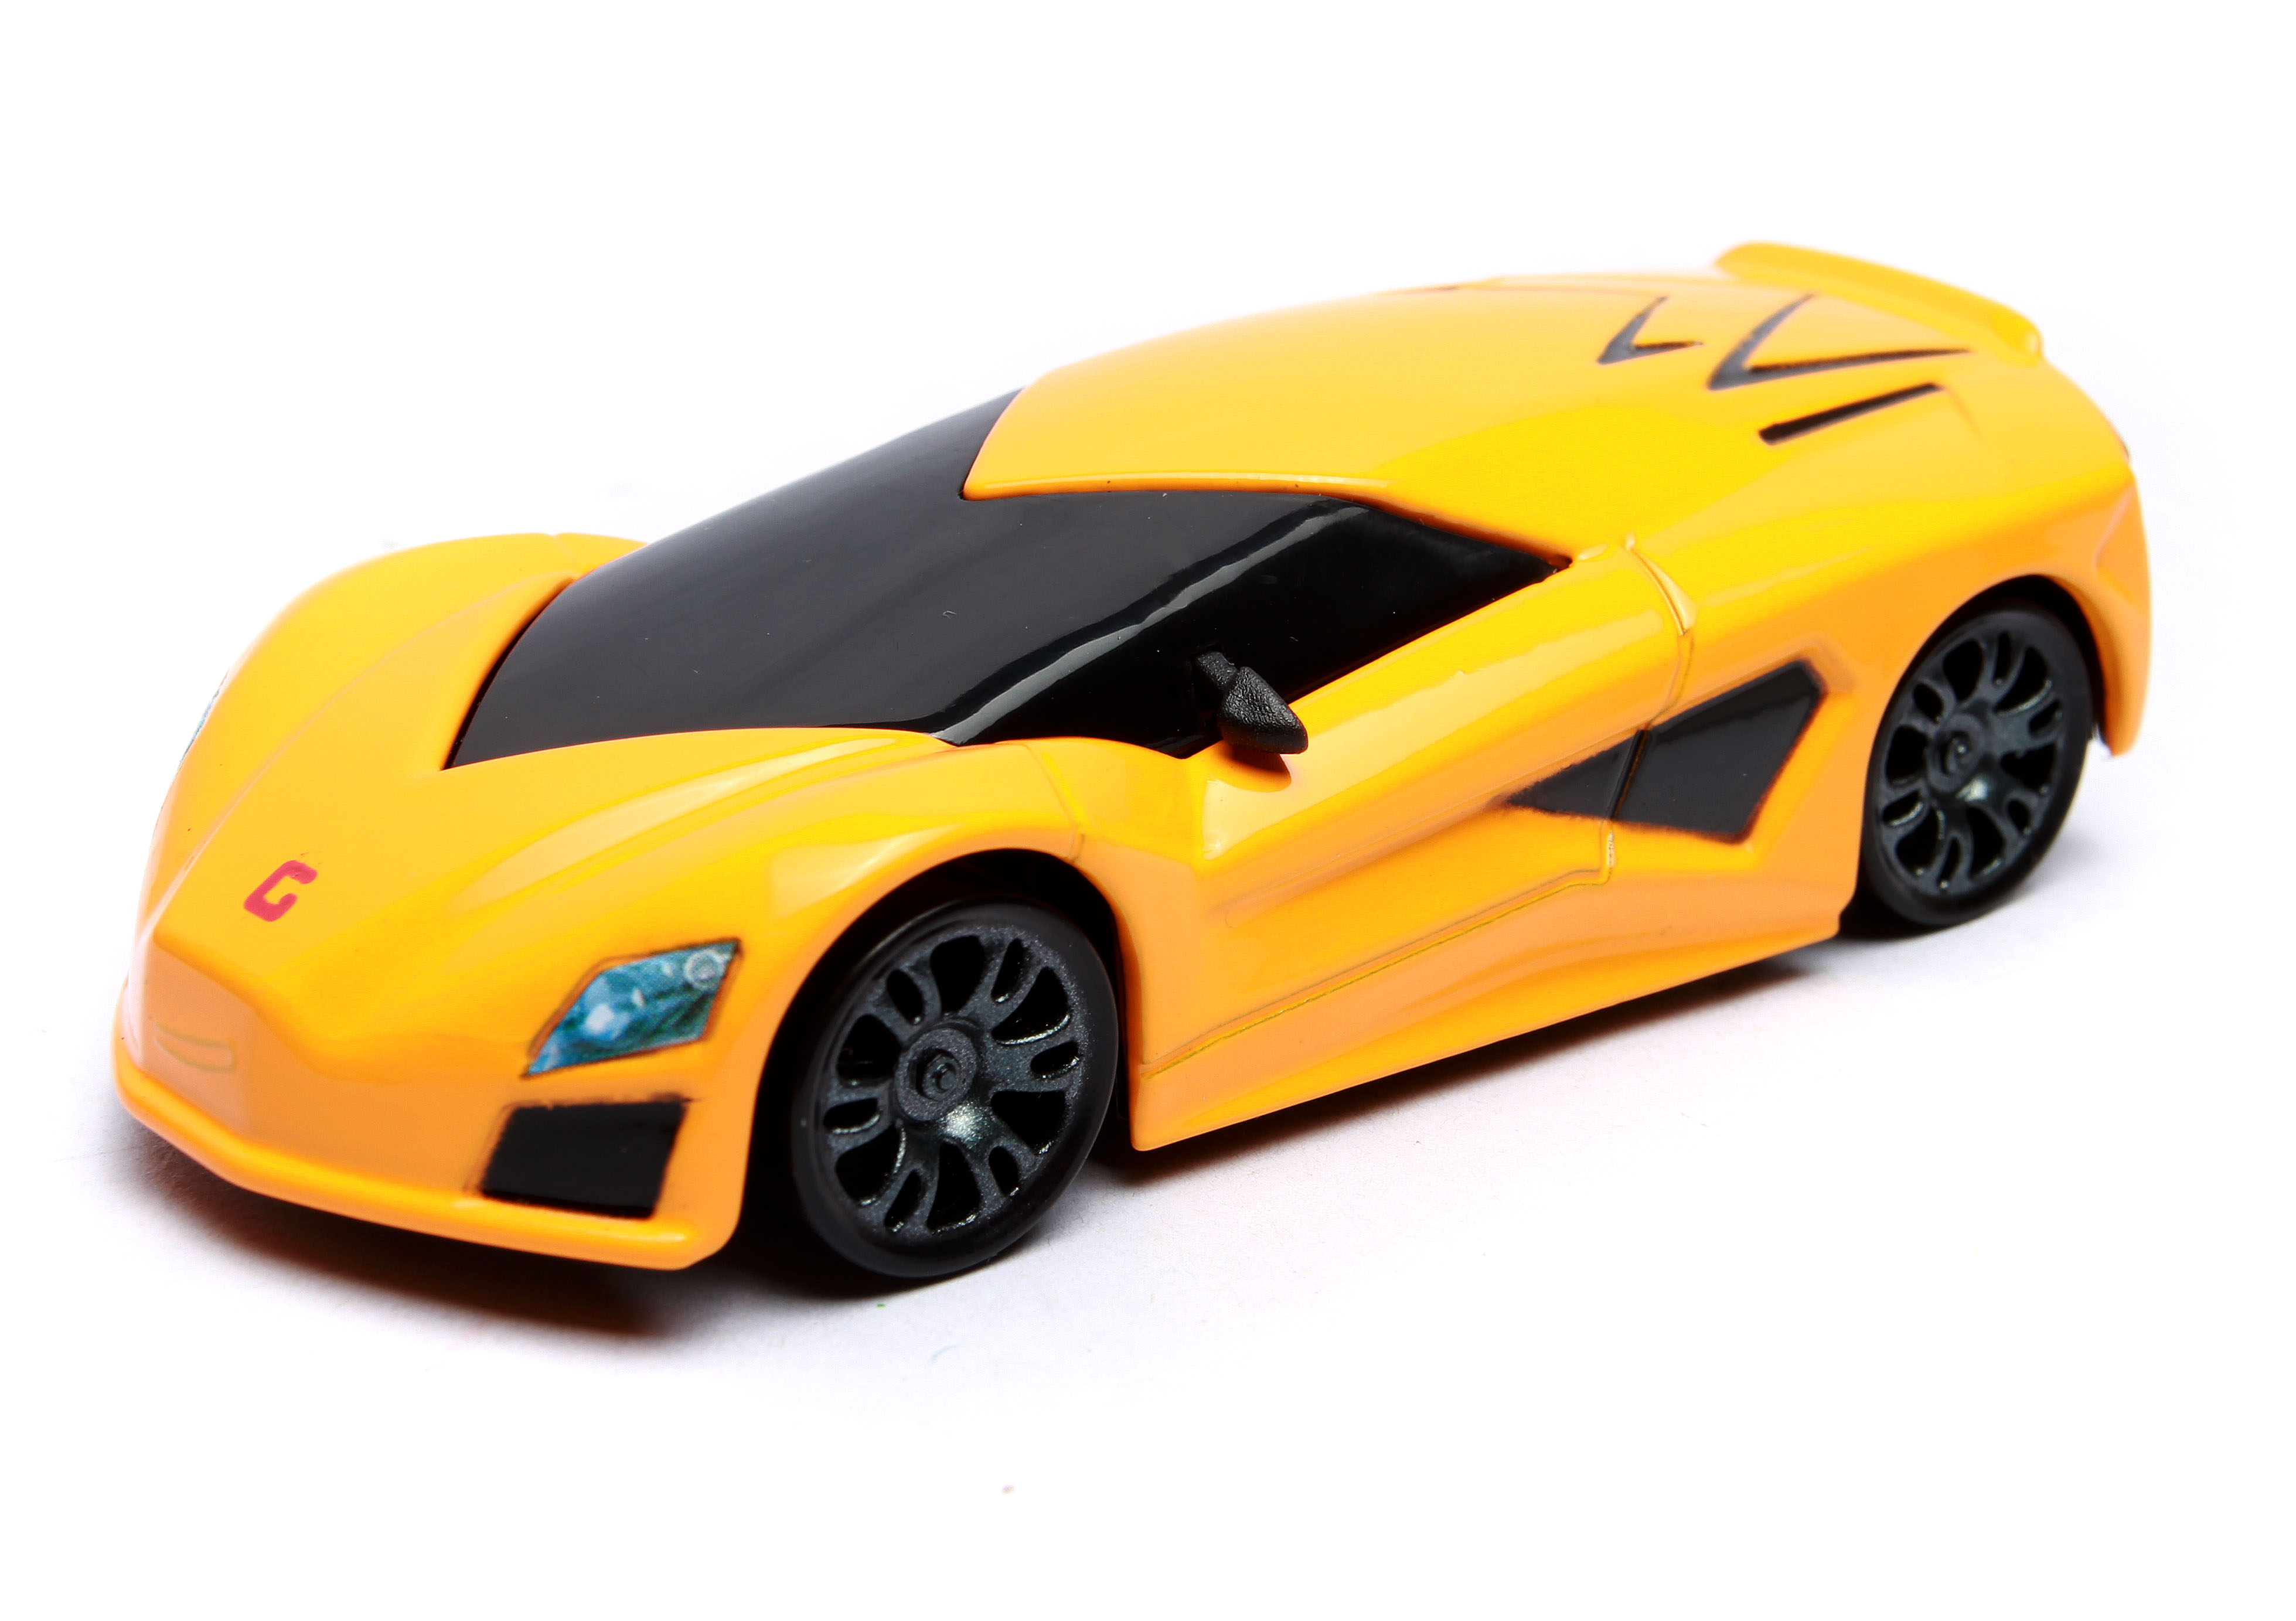 2016 new type of alloy automobile general mobilization yellow classic sports car toy model(China (Mainland))